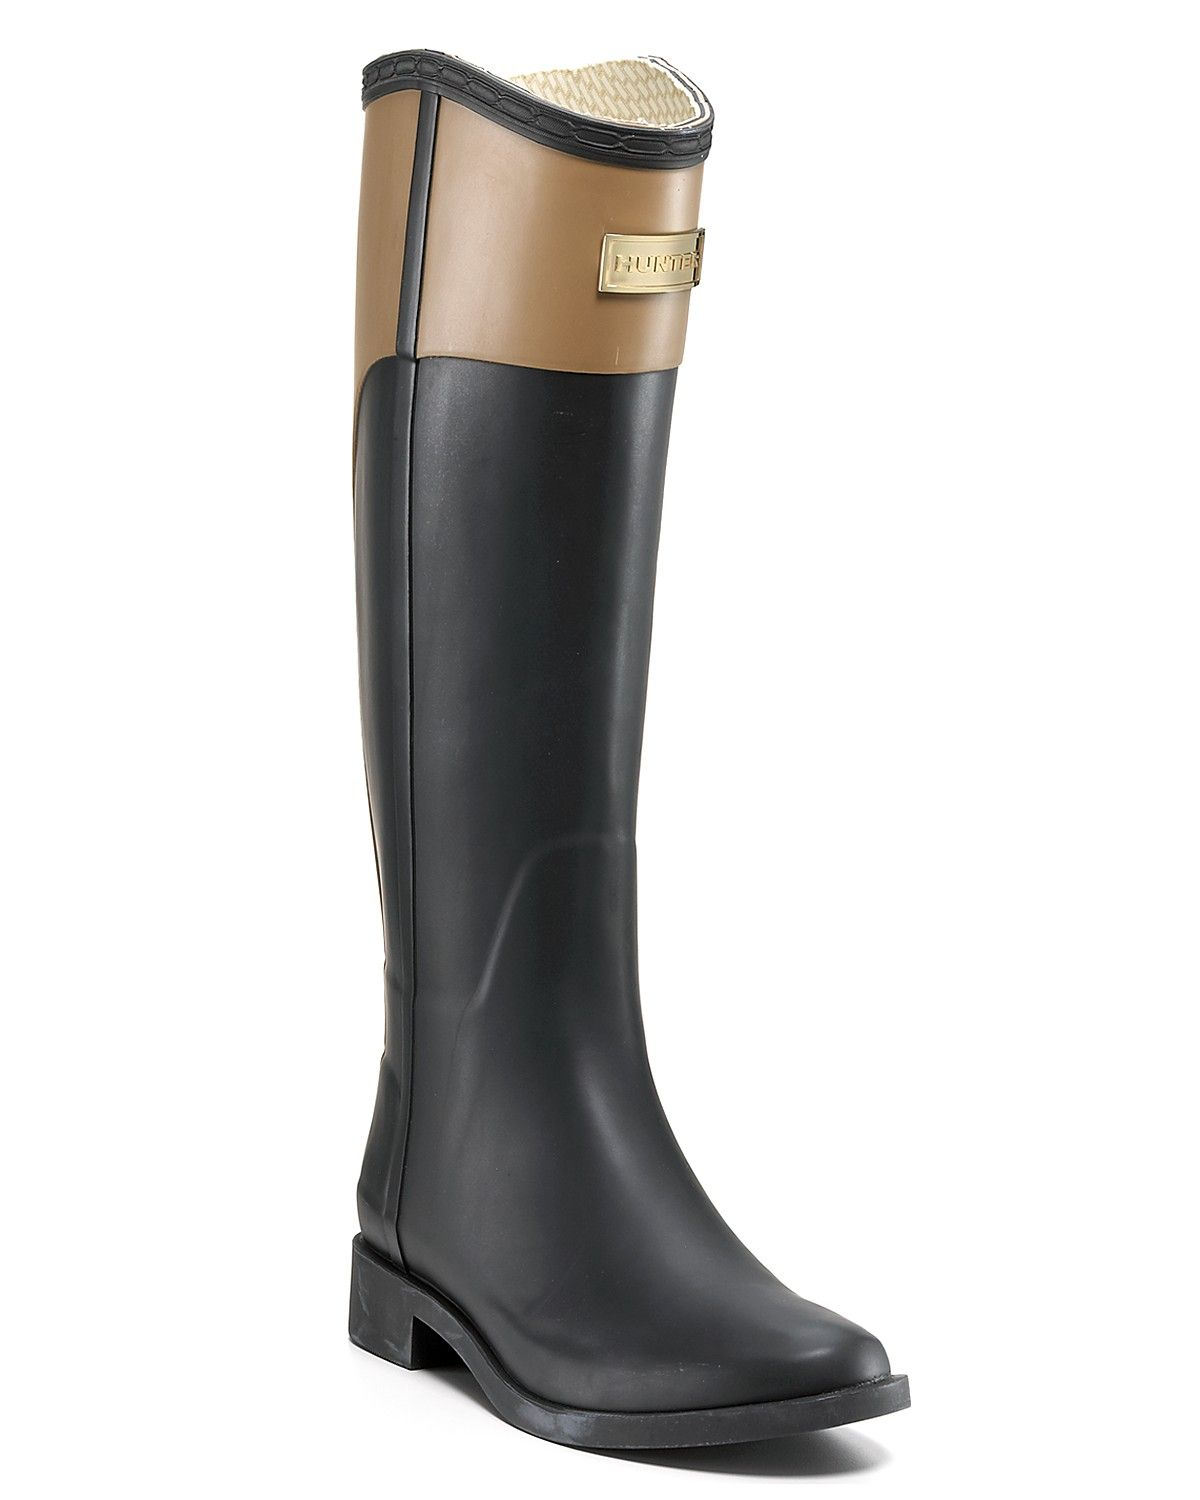 Hunter horse riding rain boots, love the sleeker design of these ...